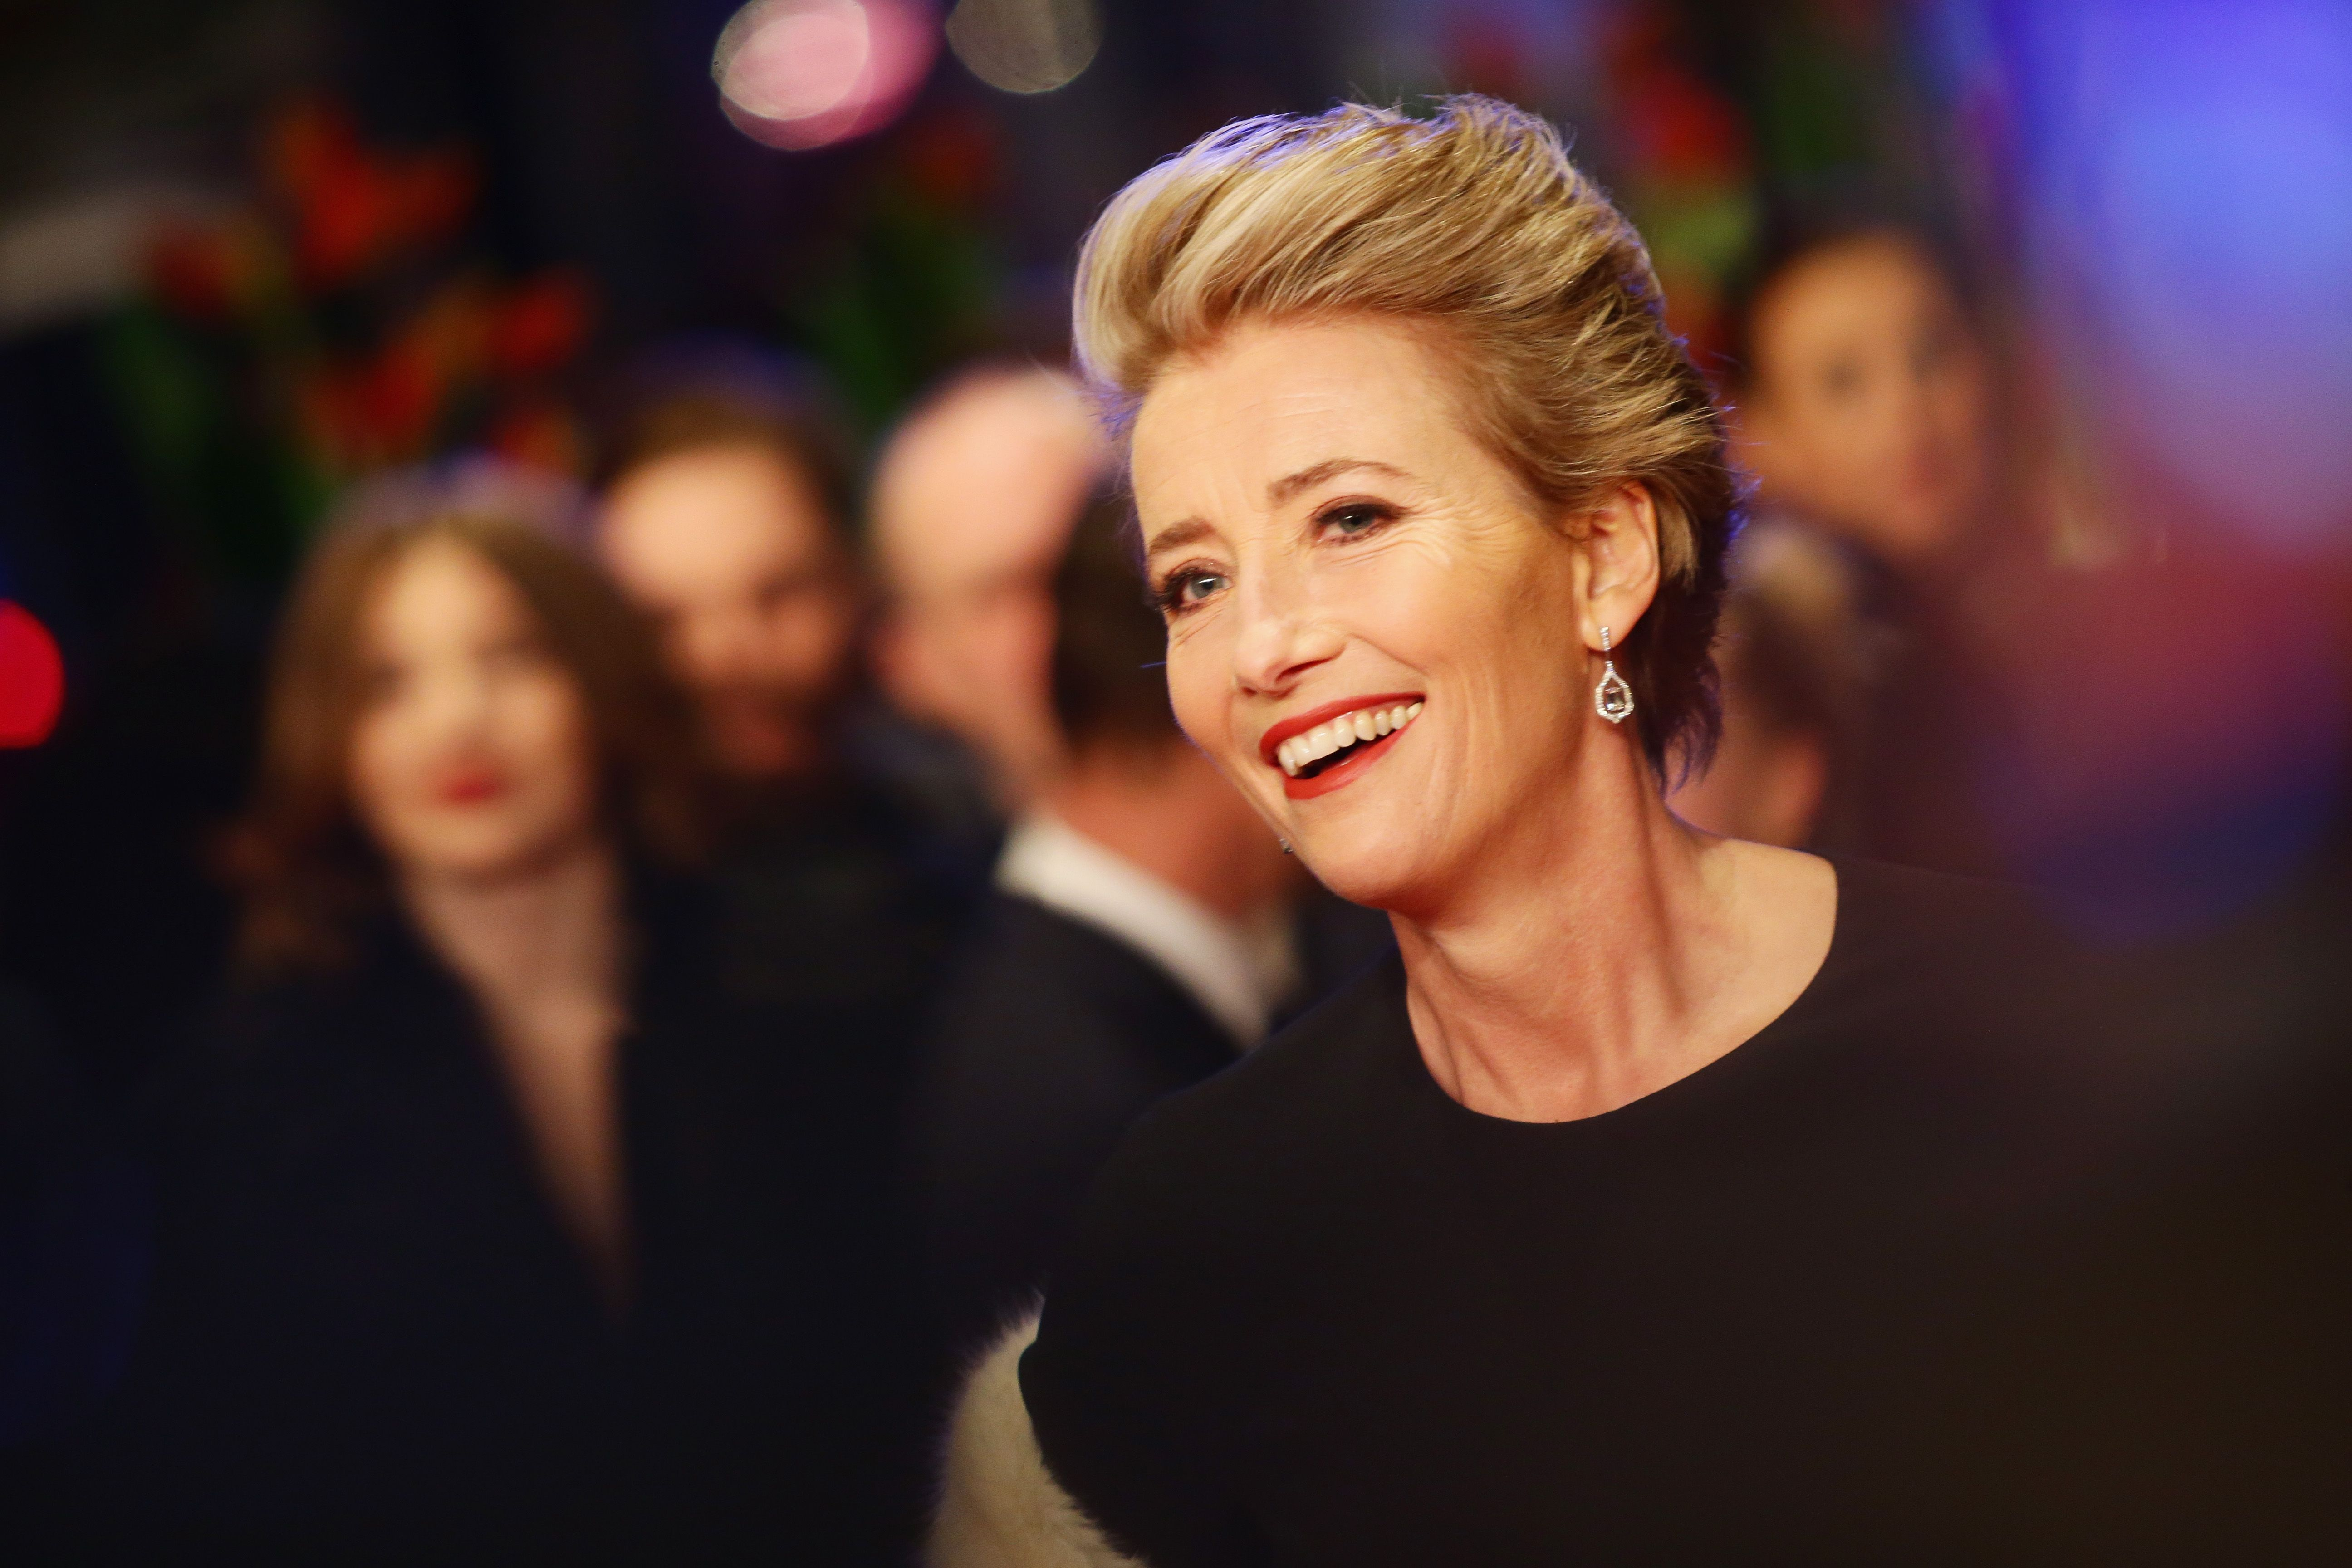 Emma Thompson's husband Greg Wise was convinced by a psychic he would end up with Kate Winslet